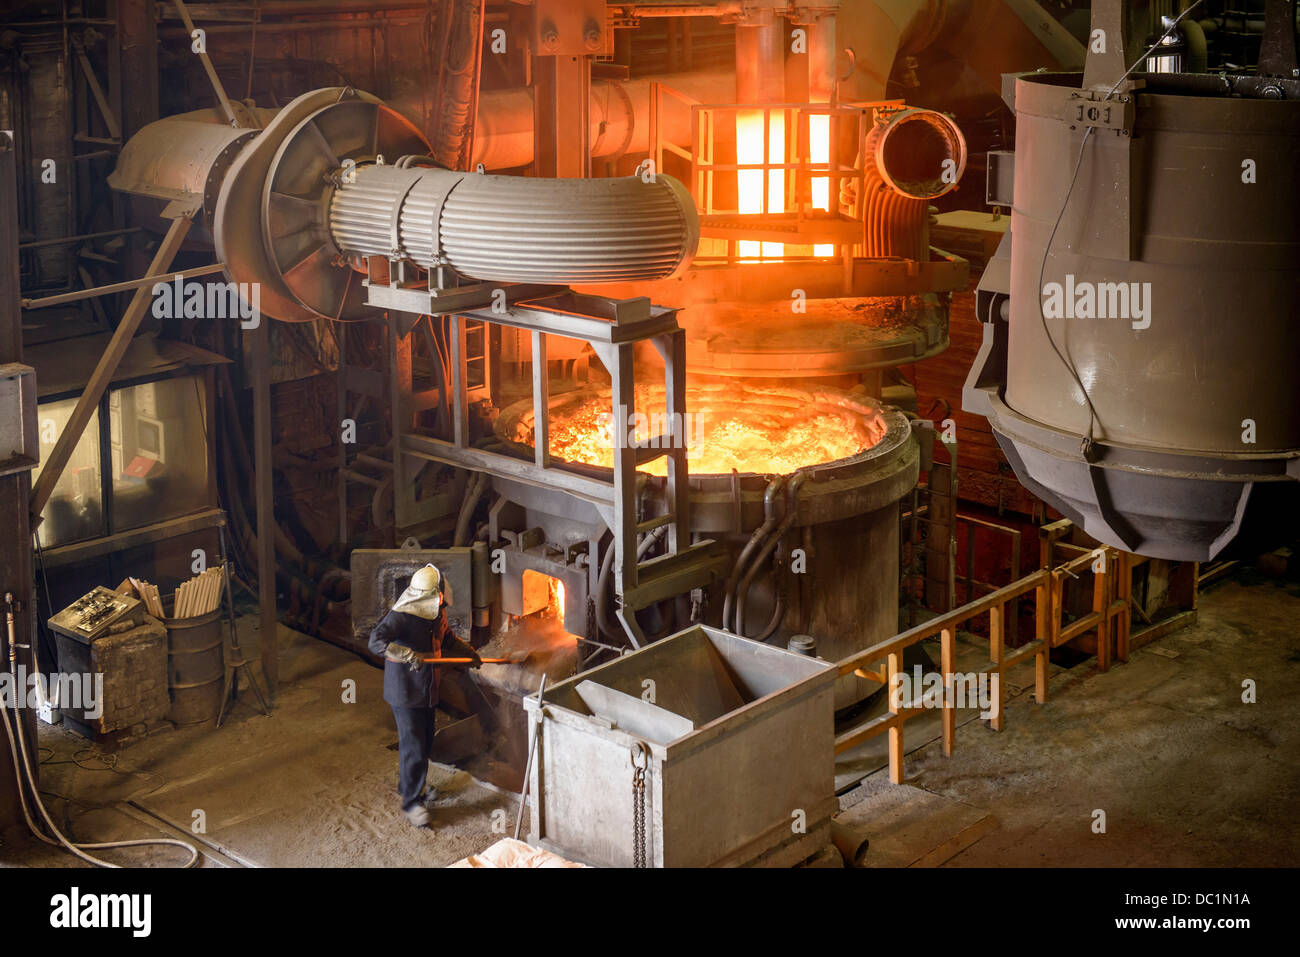 Elevated view of steel worker and furnace in steel foundry - Stock Image